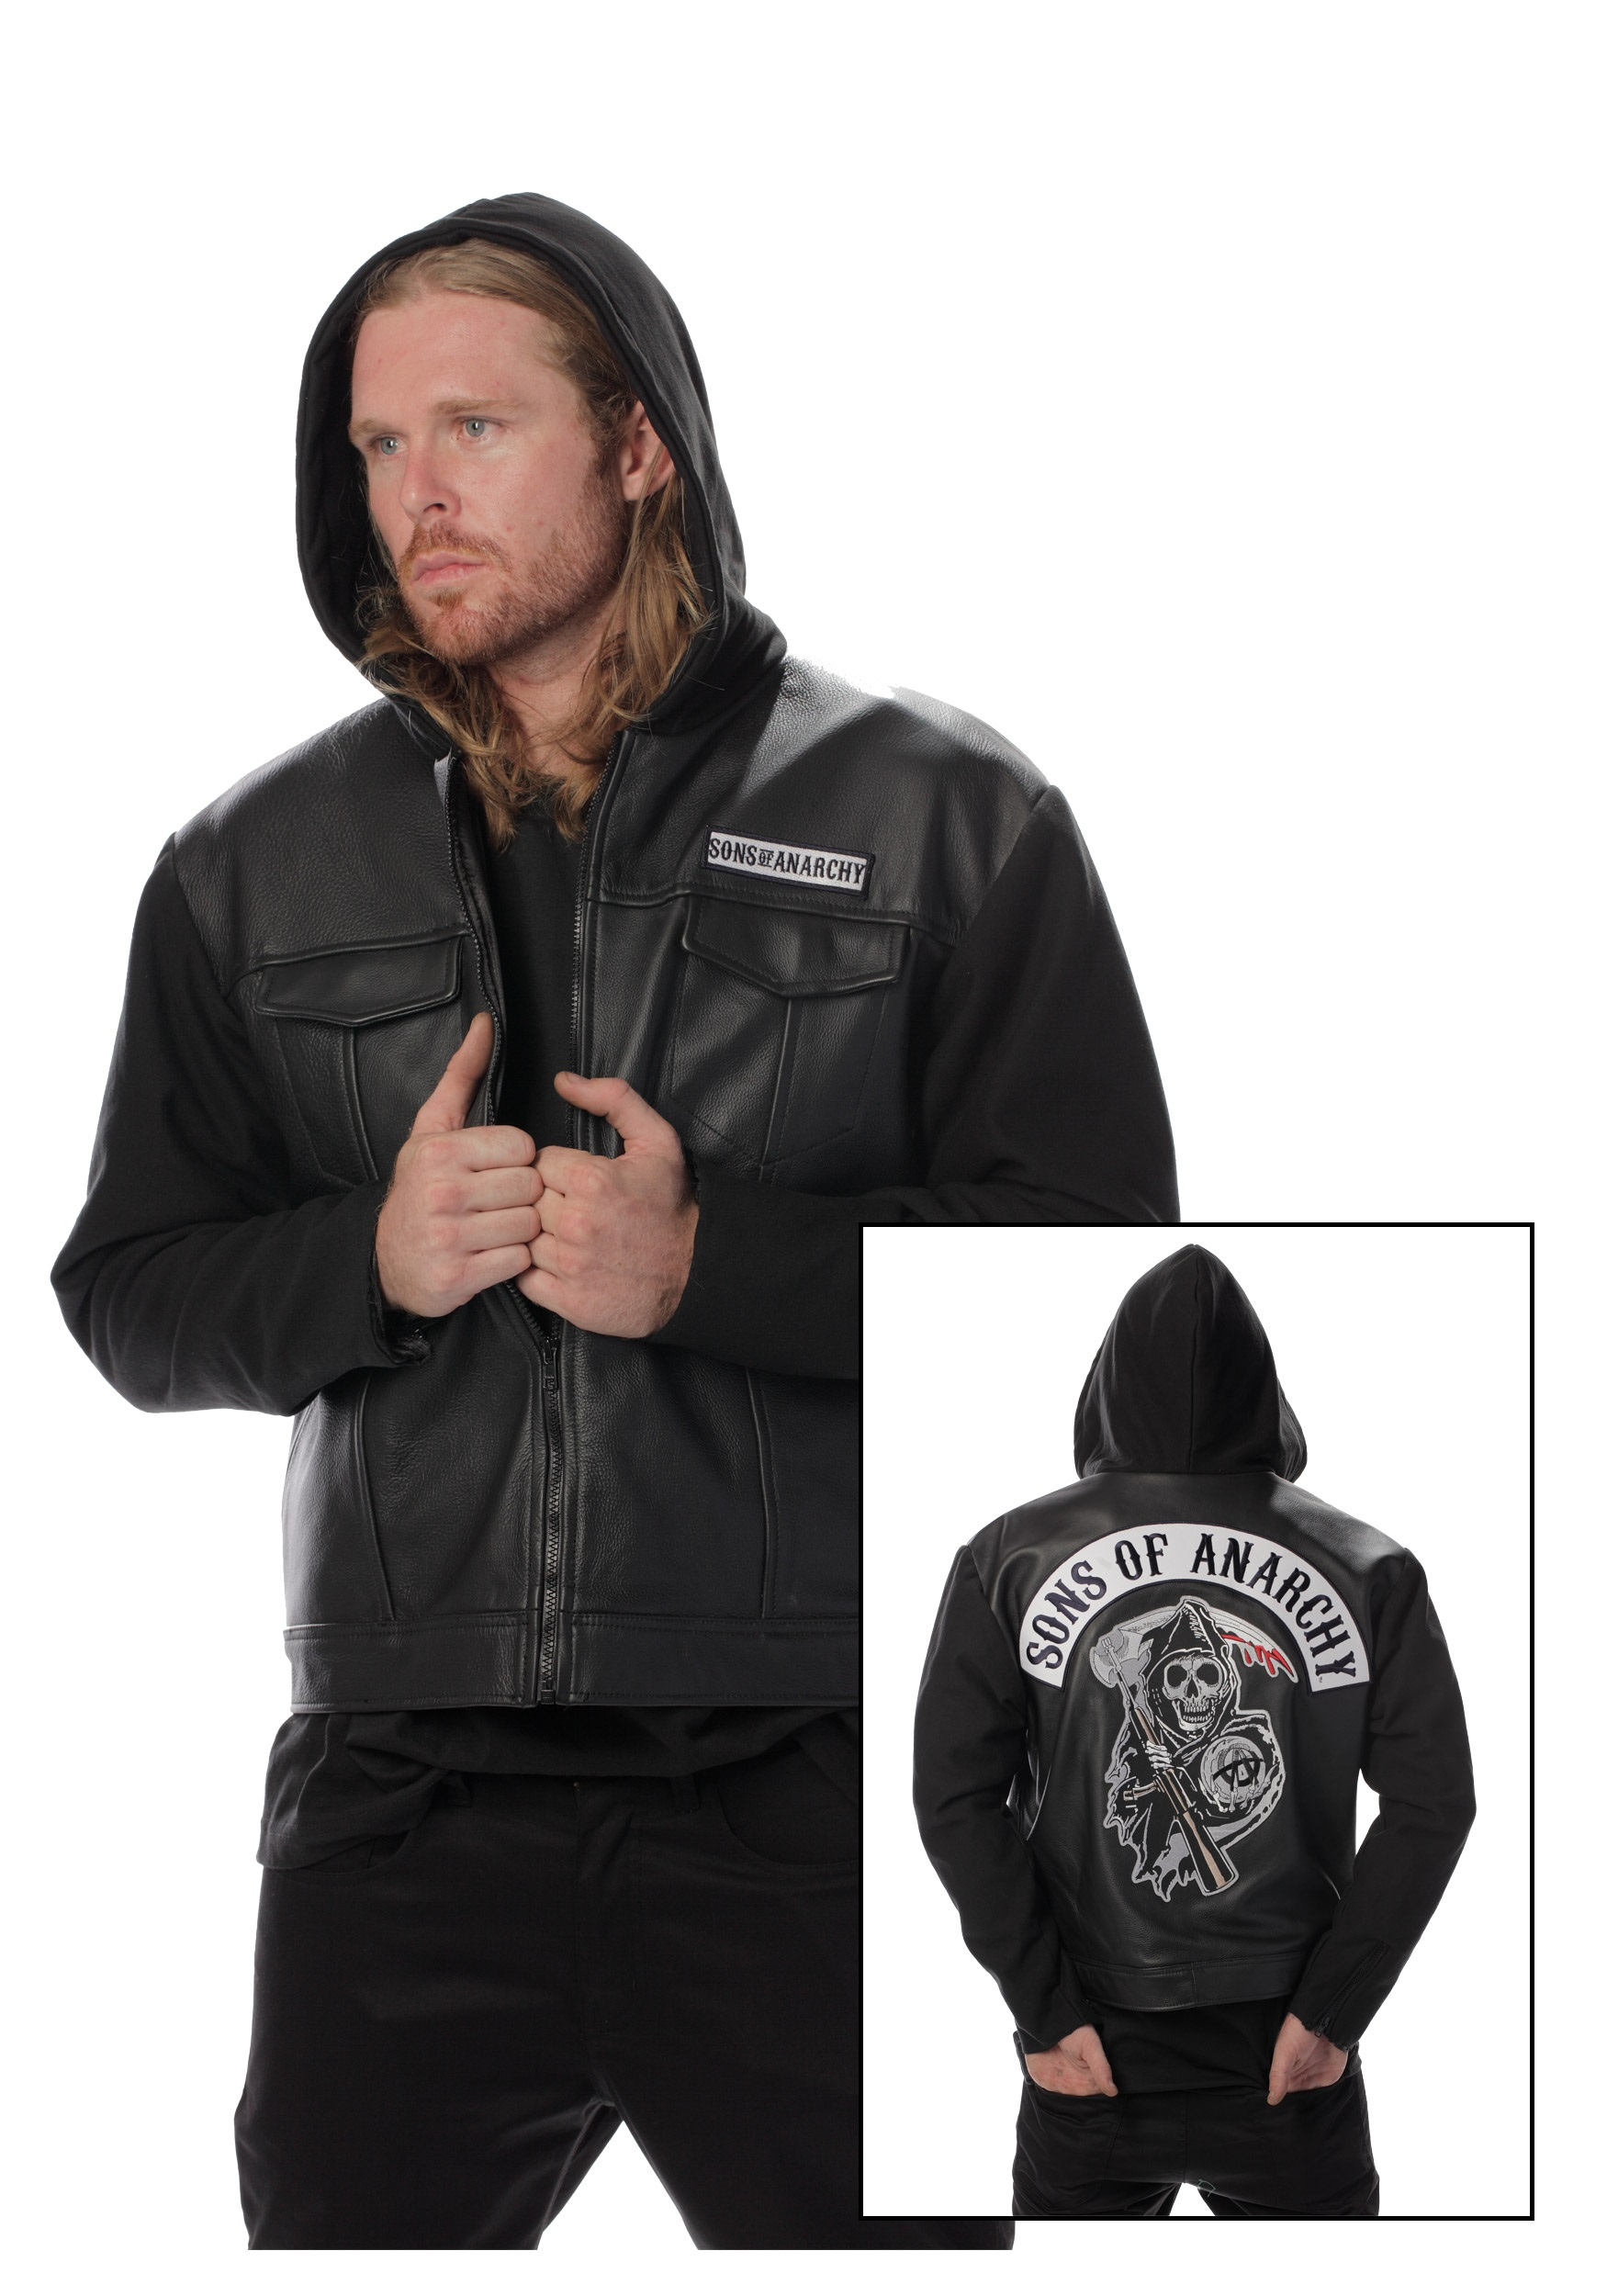 Sons Of Anarchy Leather Jacket Halloween Costume Ideas 2019